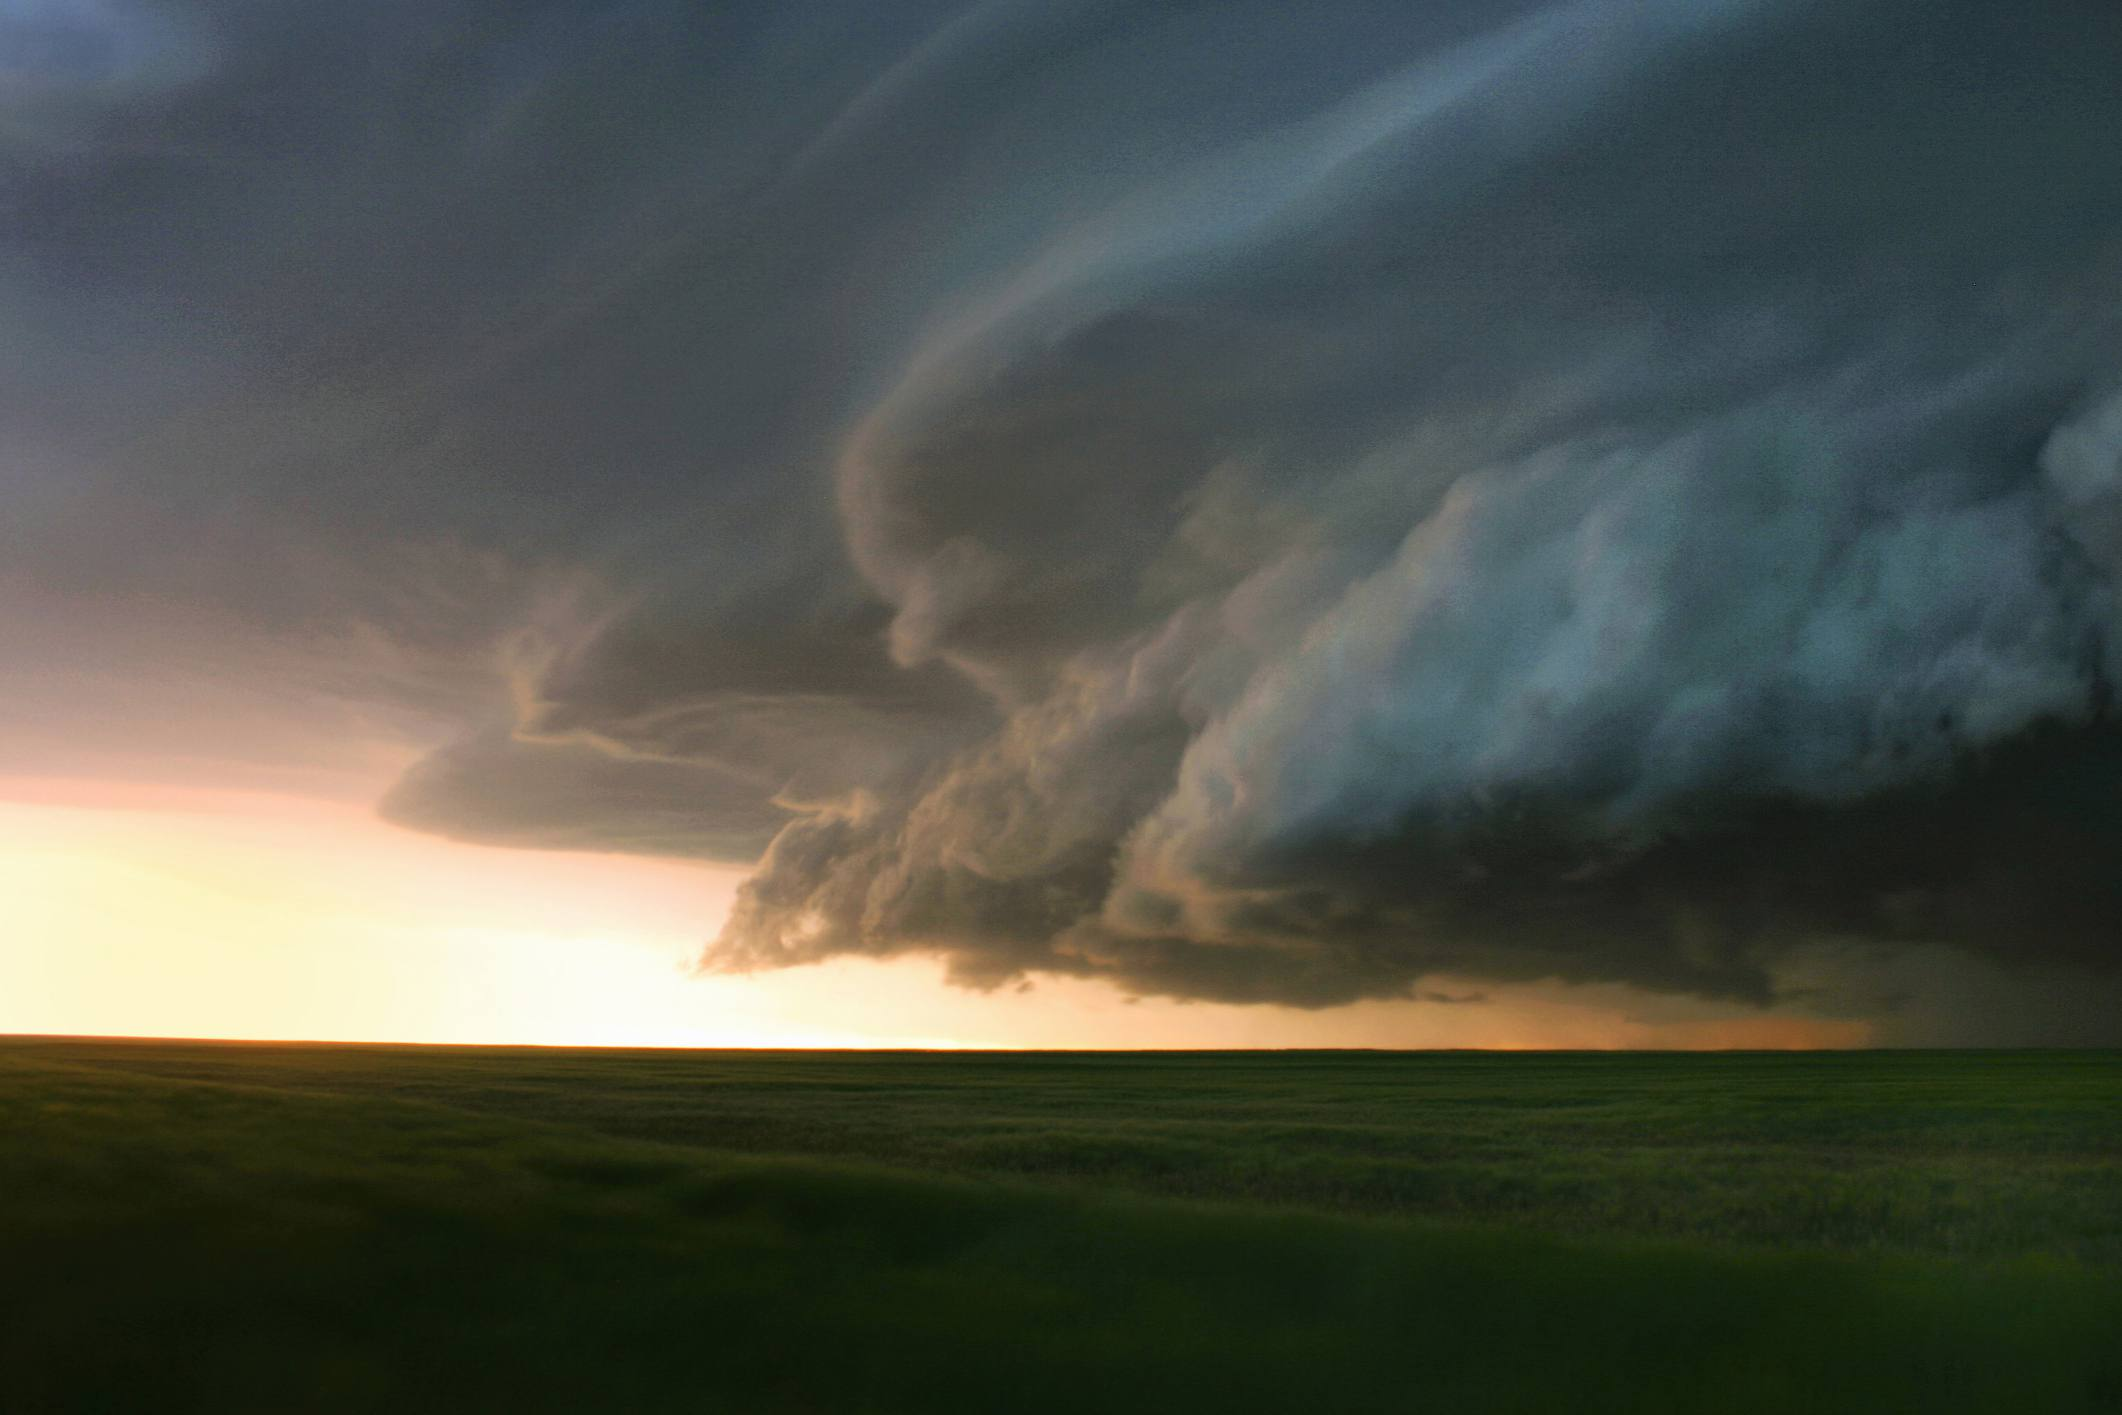 storms-shelf-cloud-56a9e24e5f9b58b7d0ffab4a.jpg